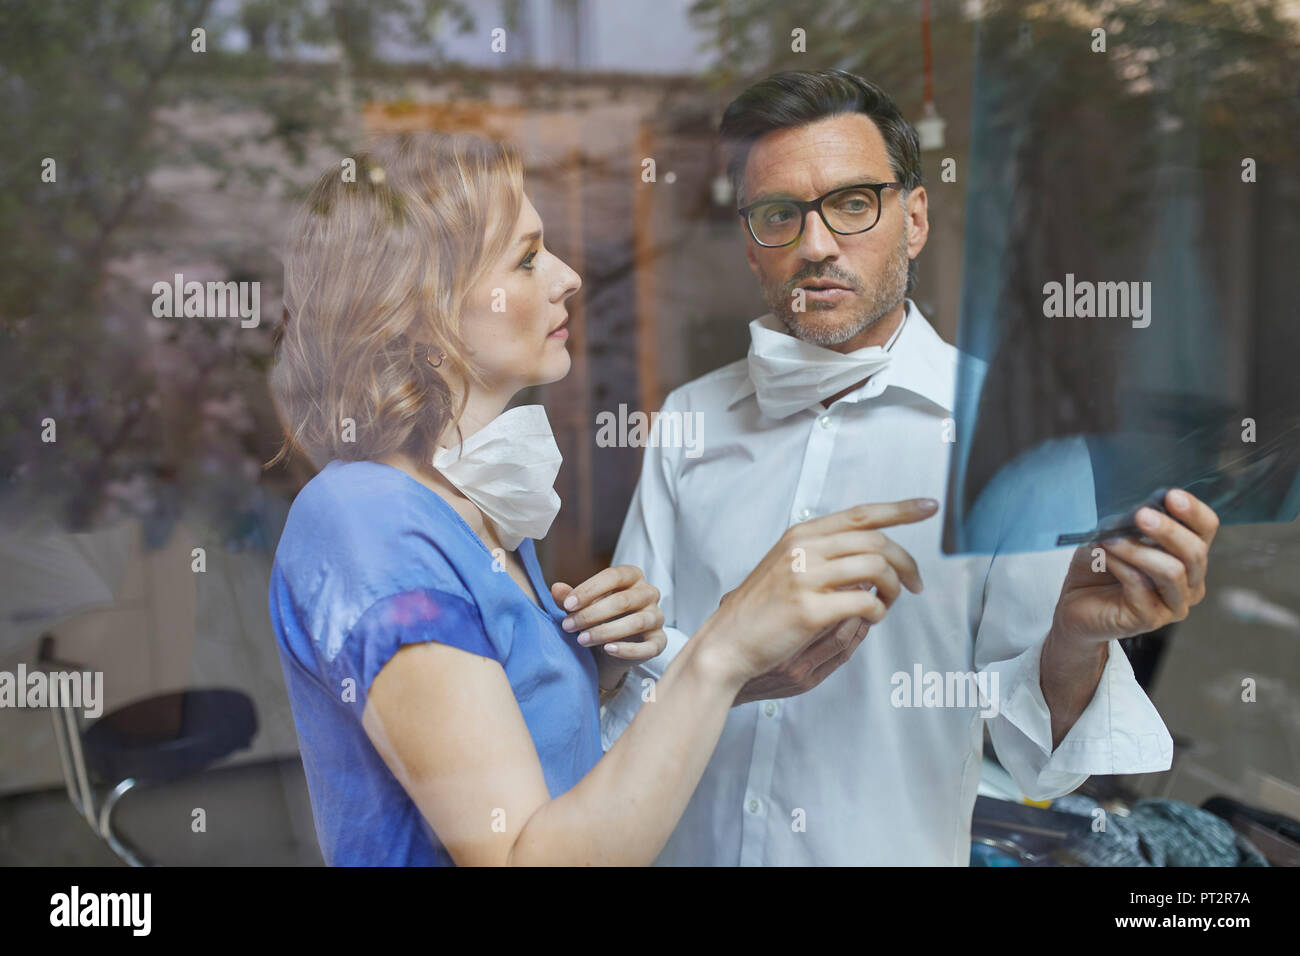 Portrait of radiologist and nurse behind windowpane looking at x-ray image - Stock Image